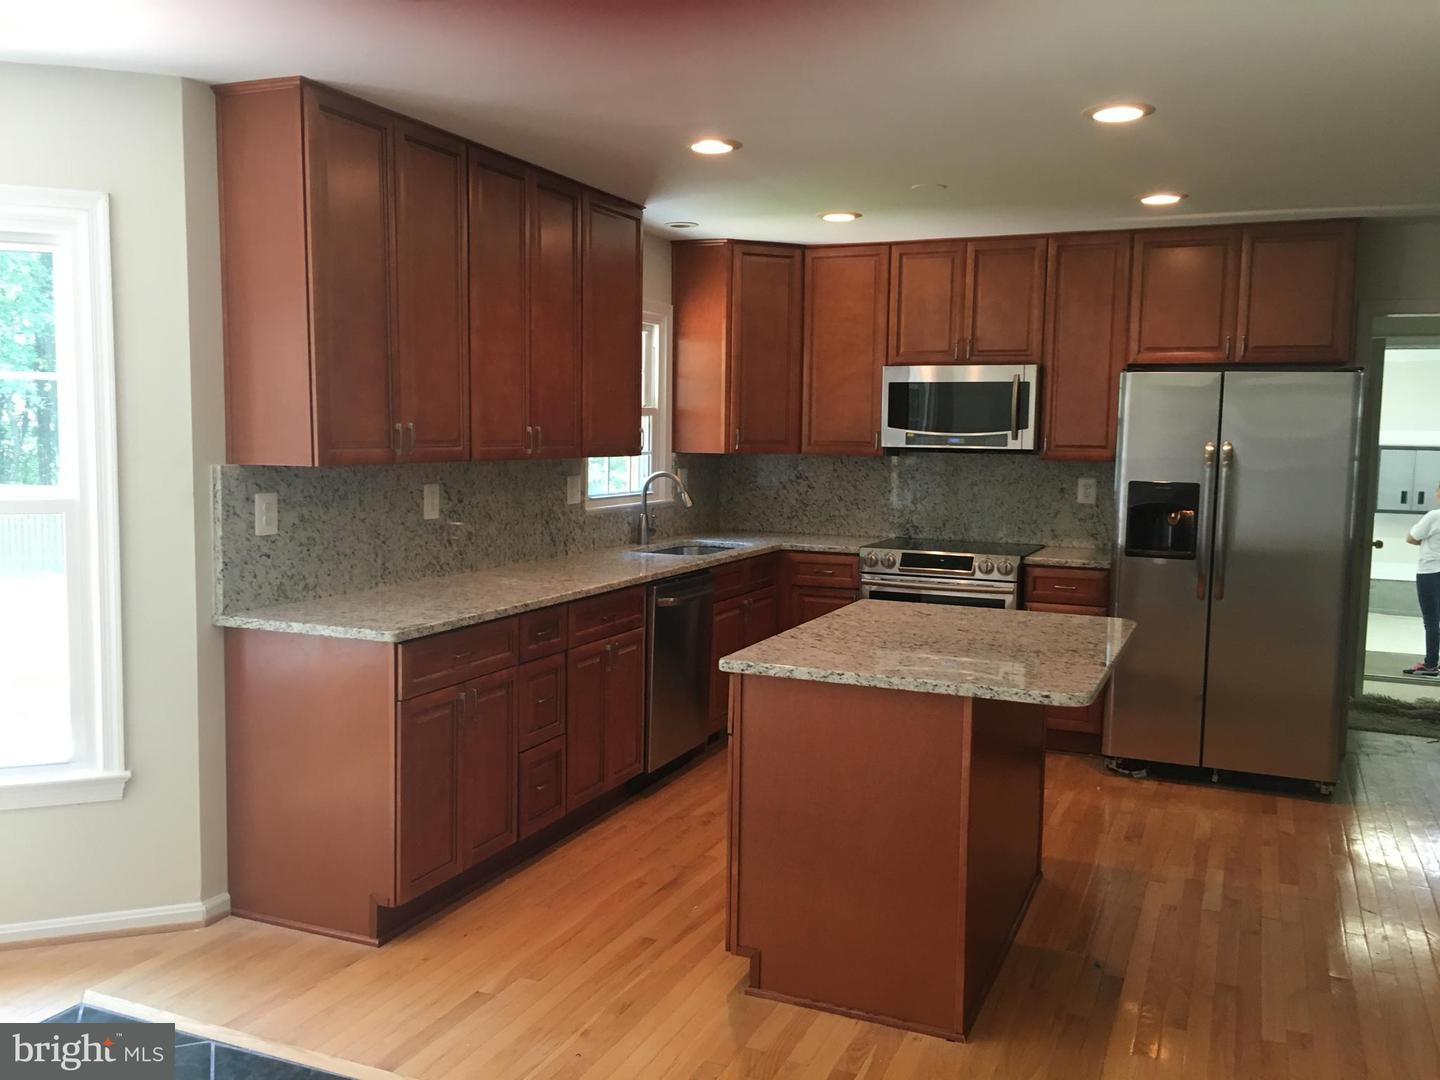 Other Residential for Rent at 11419 Jordan Ln Great Falls, Virginia 22066 United States